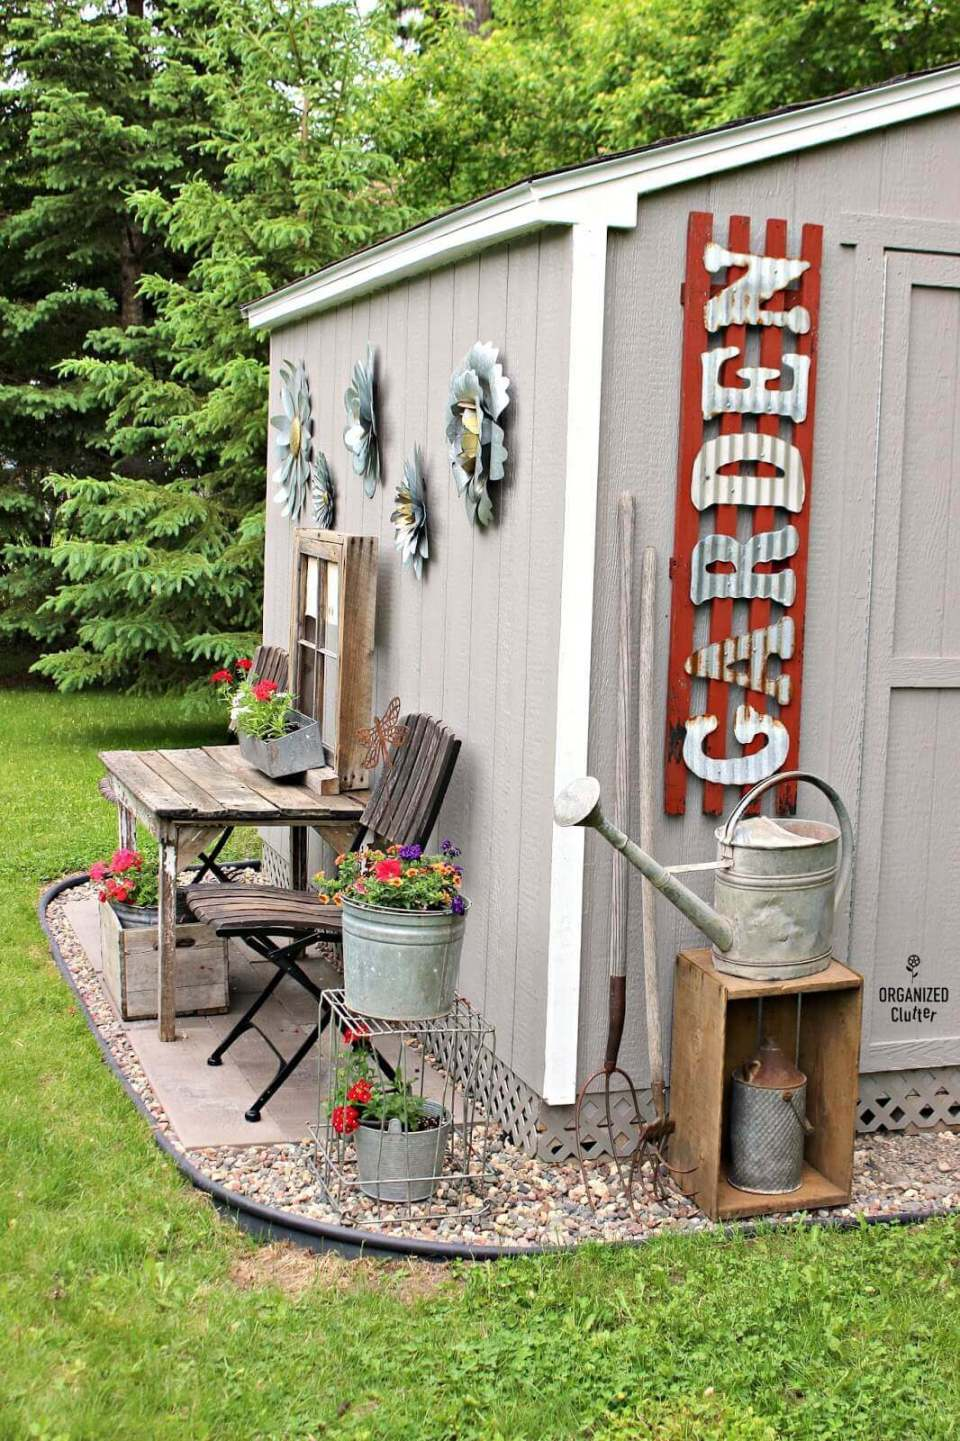 Bold Corrugated Letters on the Shed | Funny DIY Garden Sign Ideas